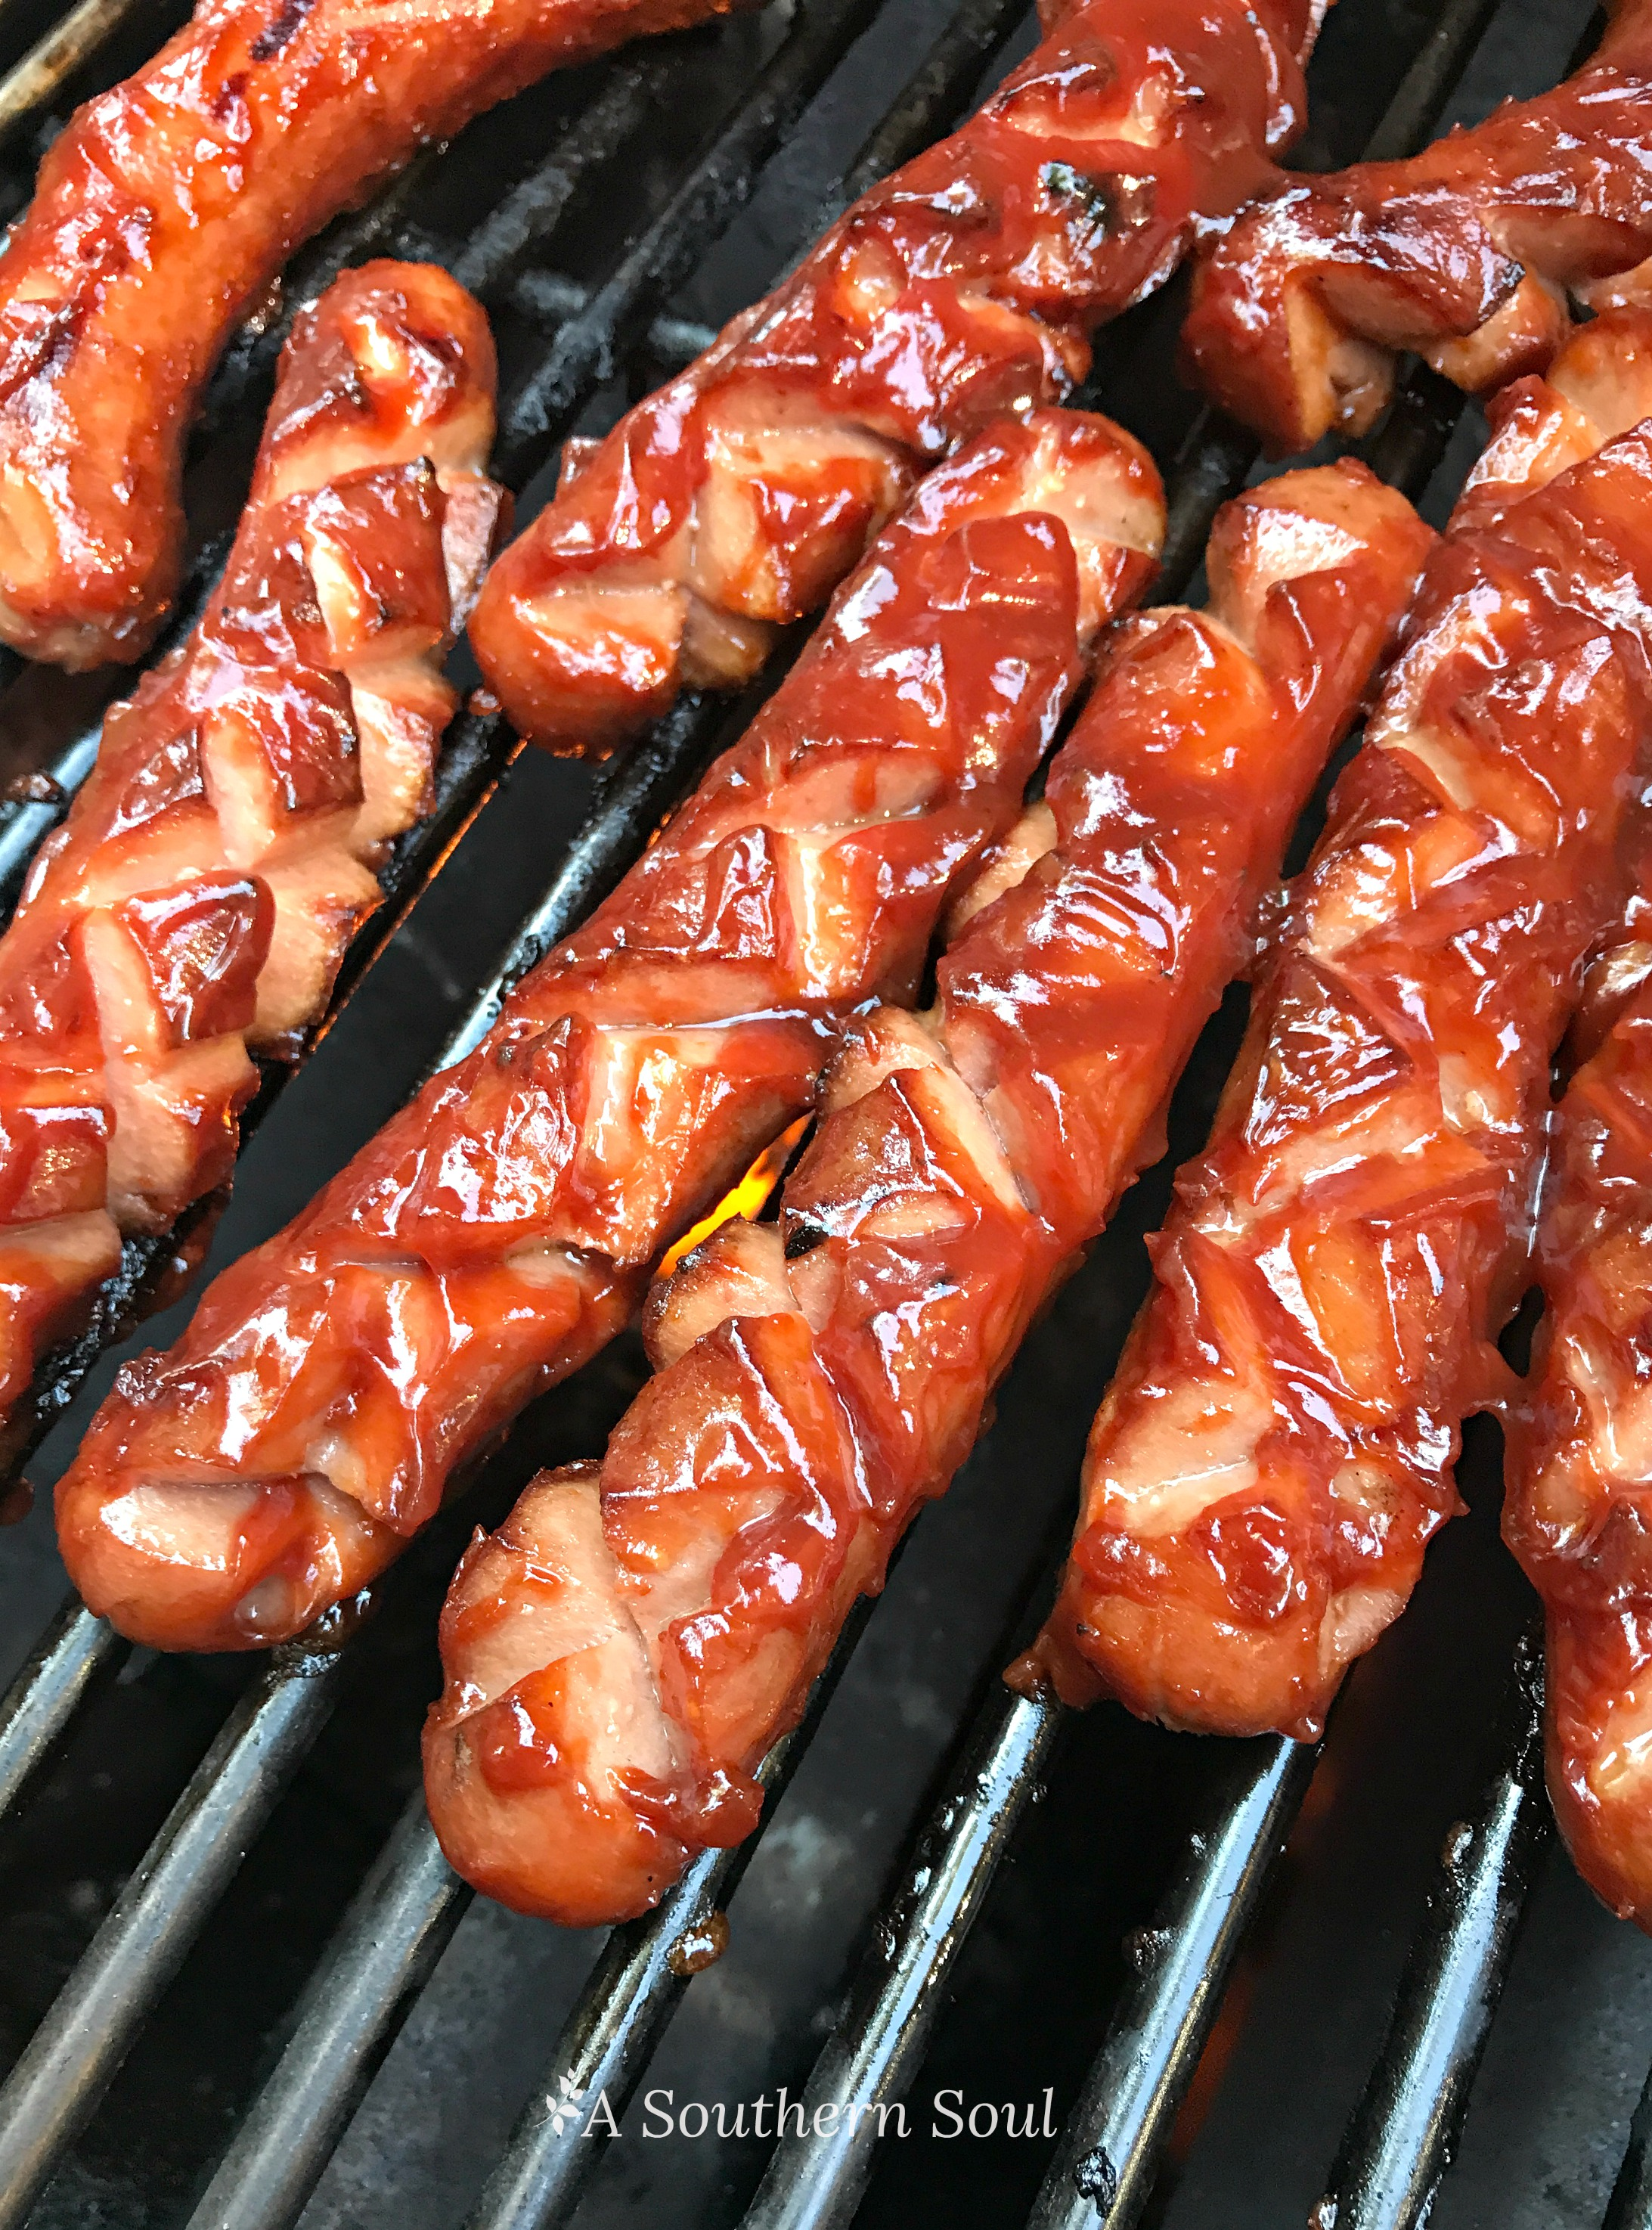 How To Make Hot Dog Links